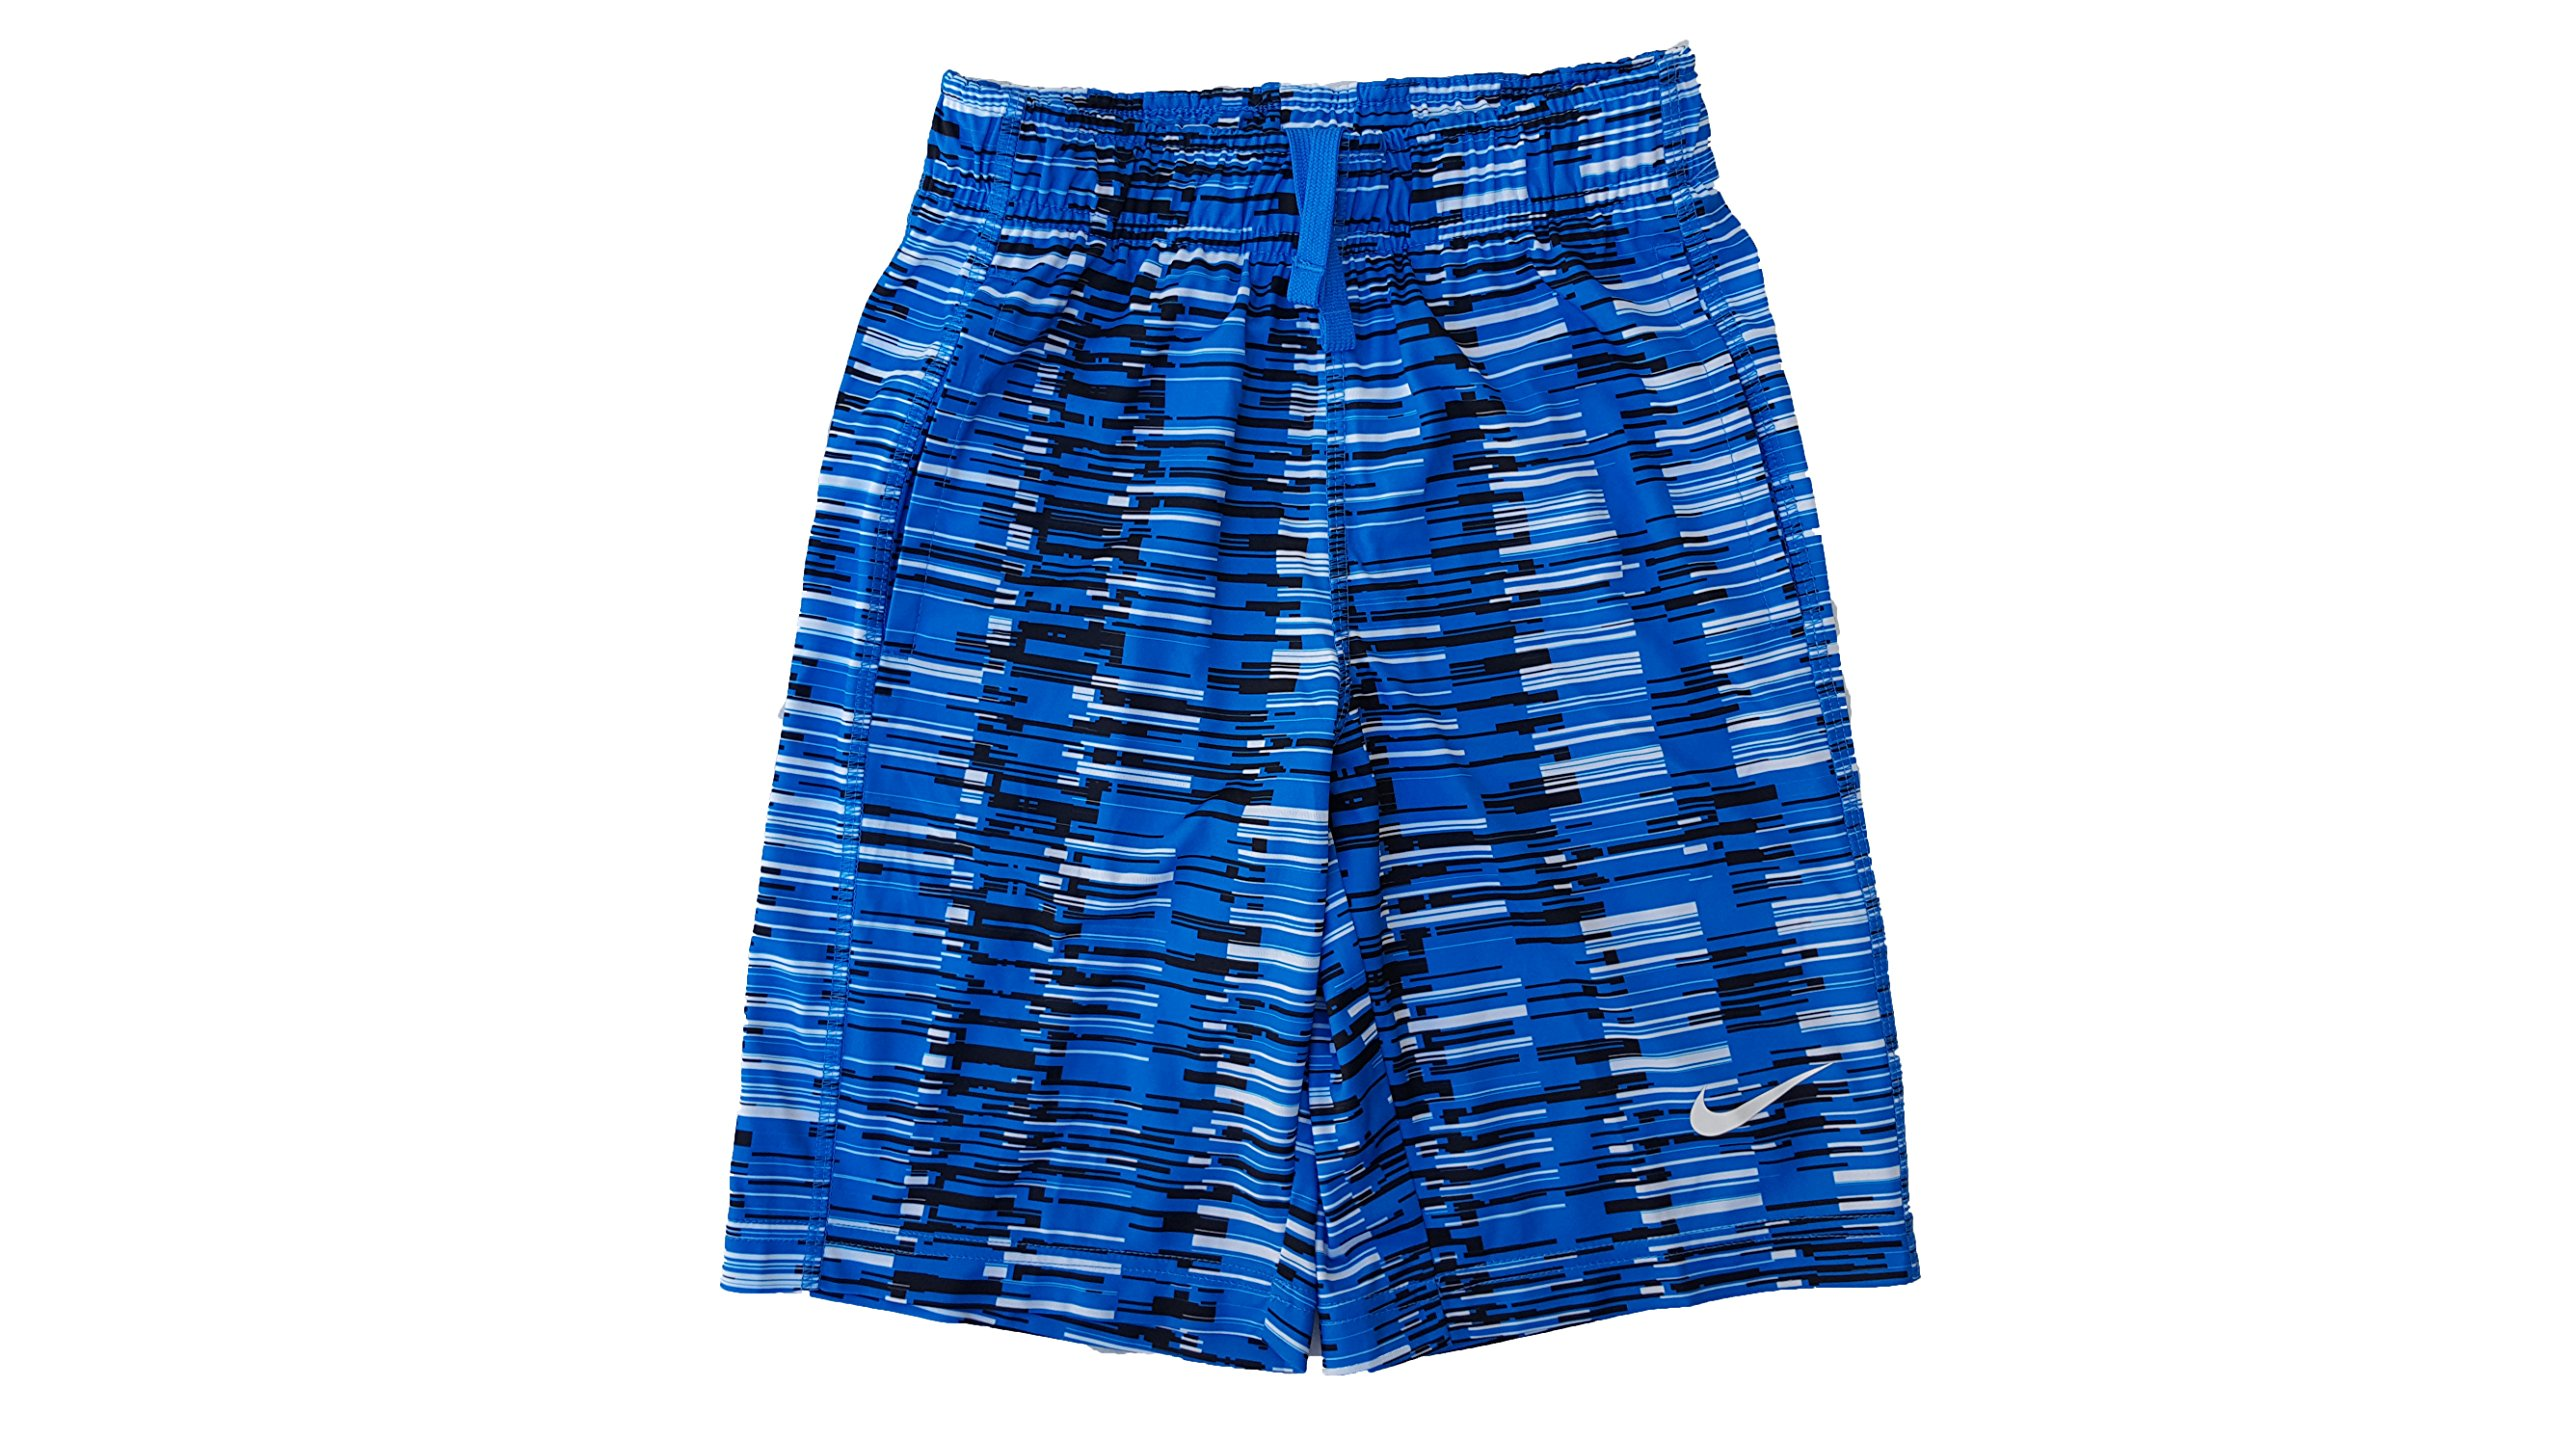 Nike Boy's Dri-FIT Fly Abstract-Print Shorts (X-Small, Photo Blue (407) / White/Photo Blue) by Nike